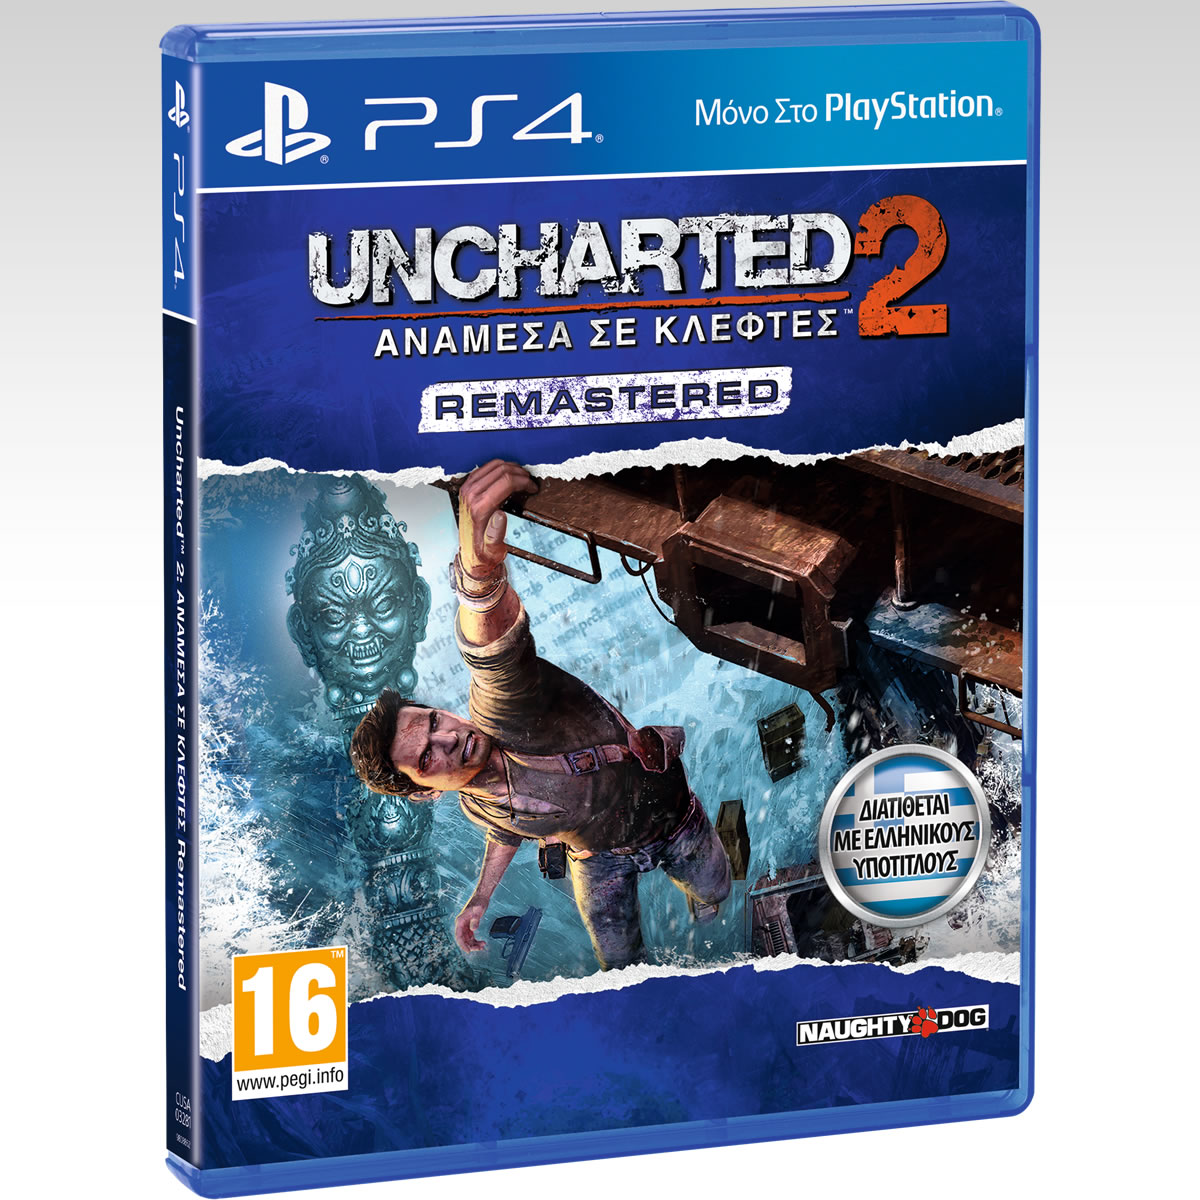 UNCHARTED 2: AMONG THIEVES - UNCHARTED 2: ΑΝΑΜΕΣΑ ΣΕ ΚΛΕΦΤΕΣ Remastered [ΕΛΛΗΝΙΚΟ] (PS4)